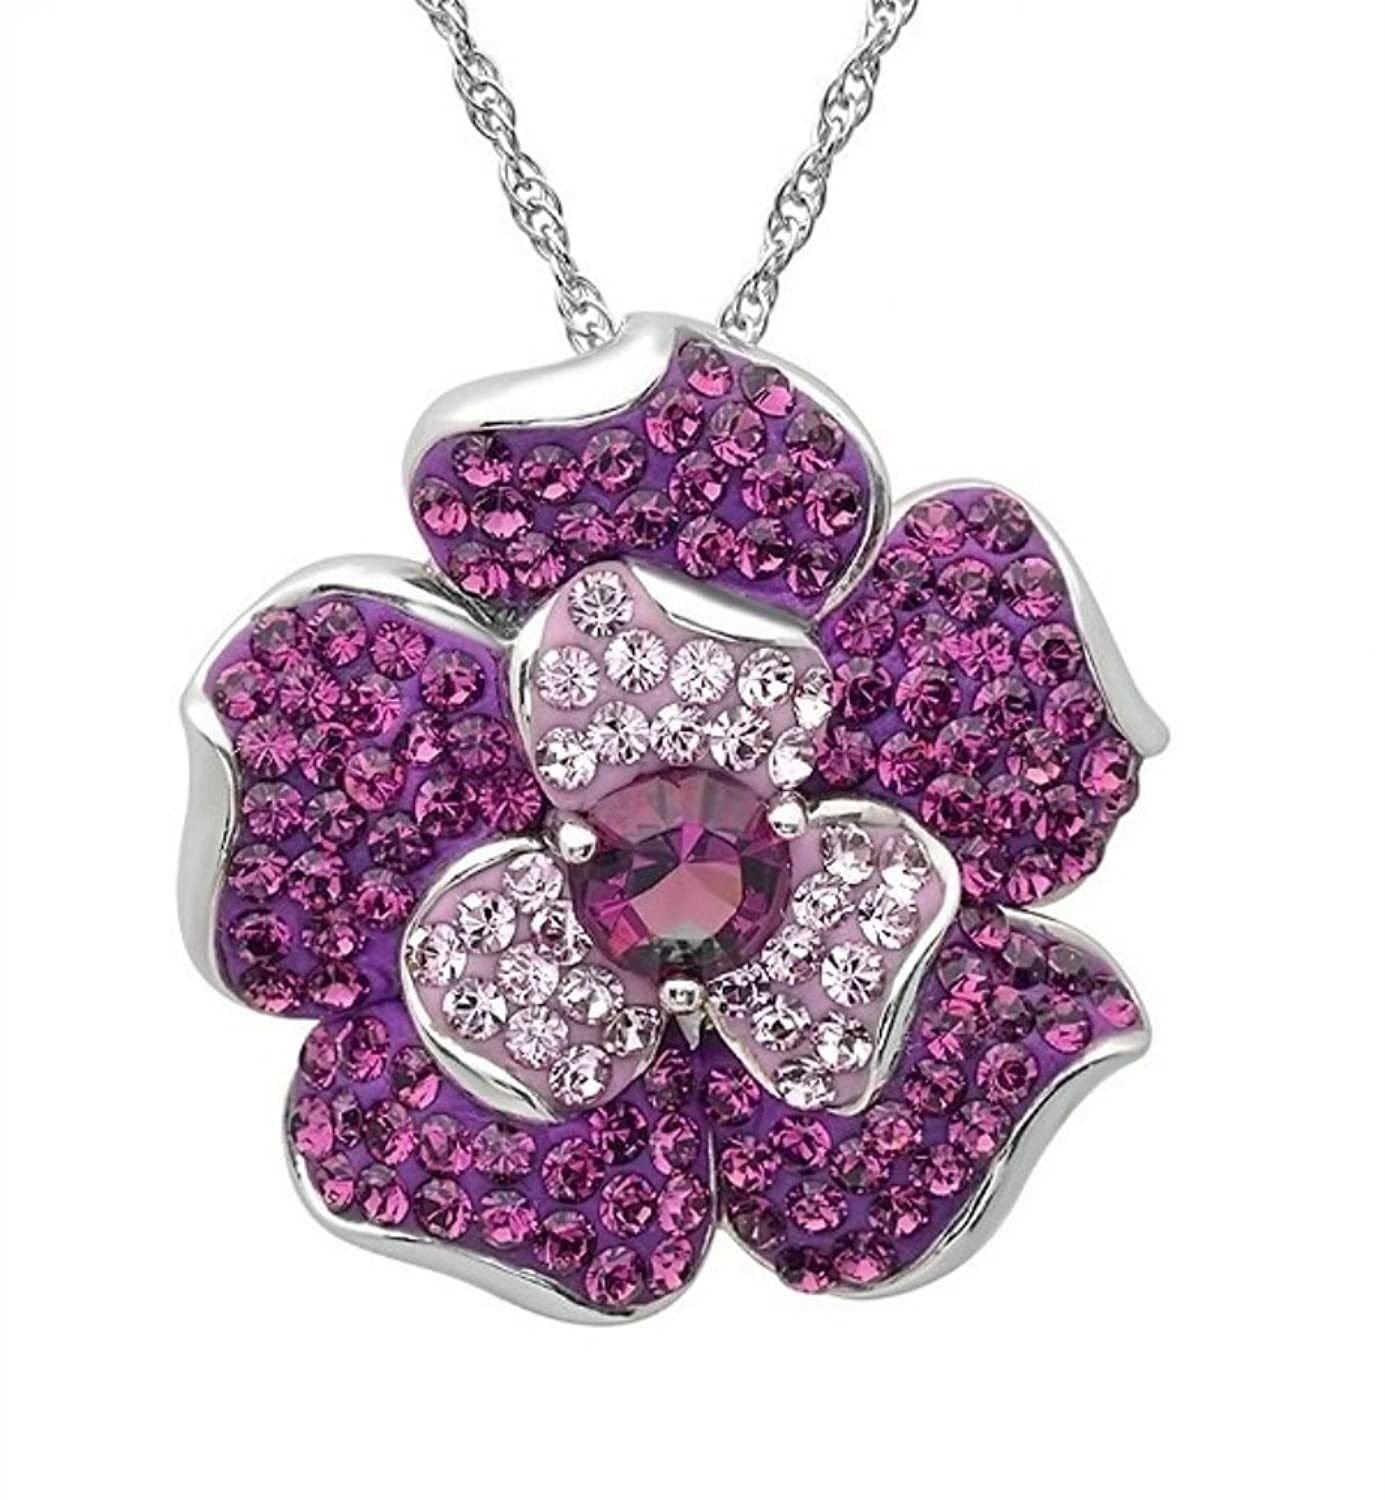 Amazon sterling silver flower pendant necklace made with amazon sterling silver flower pendant necklace made with purple swarovski crystals jewelry mozeypictures Gallery